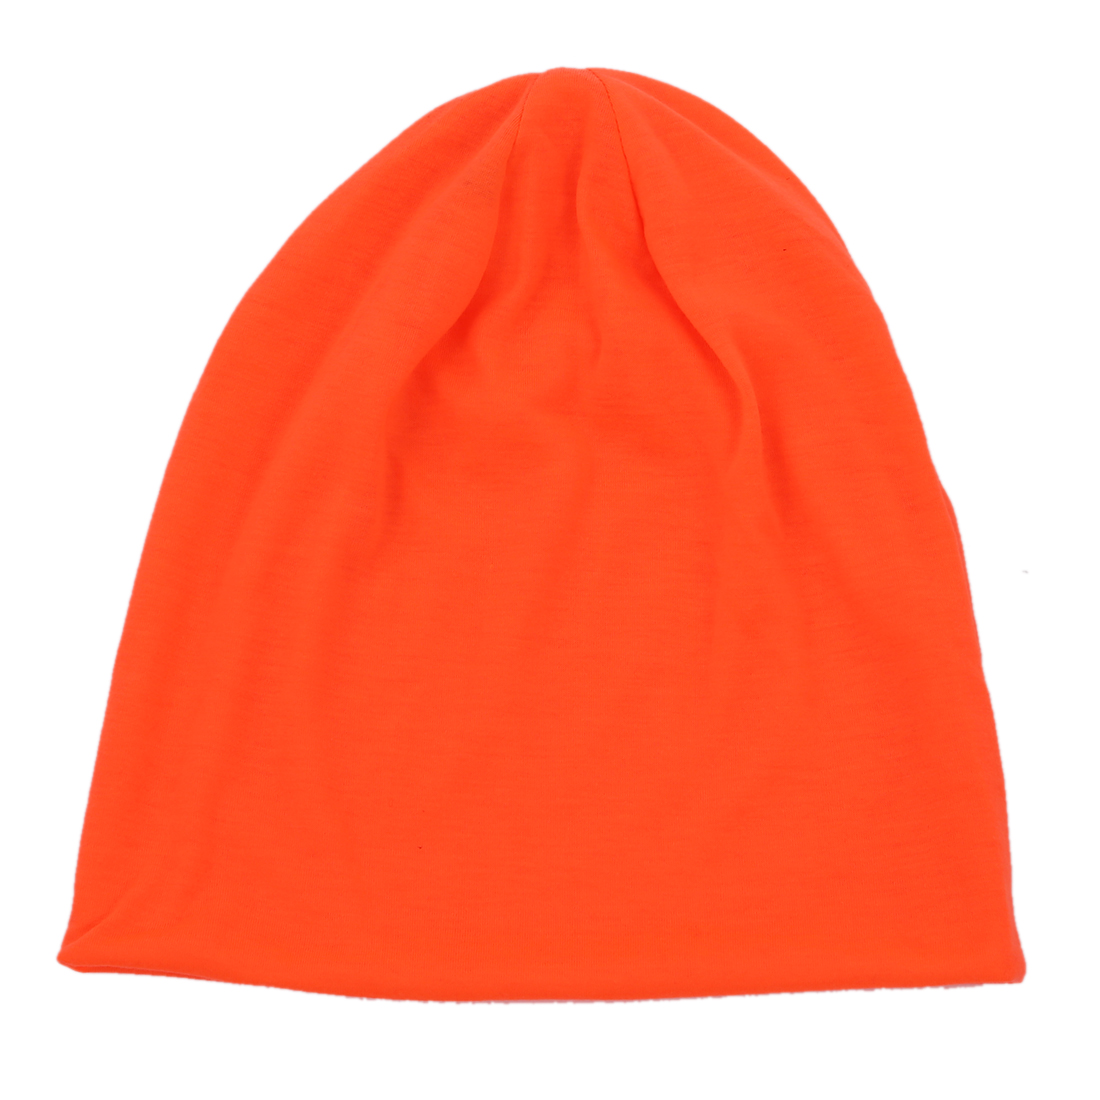 Men Women Beanie Solid Color Hip-hop Slouch Unisex Knitted Cap Hat